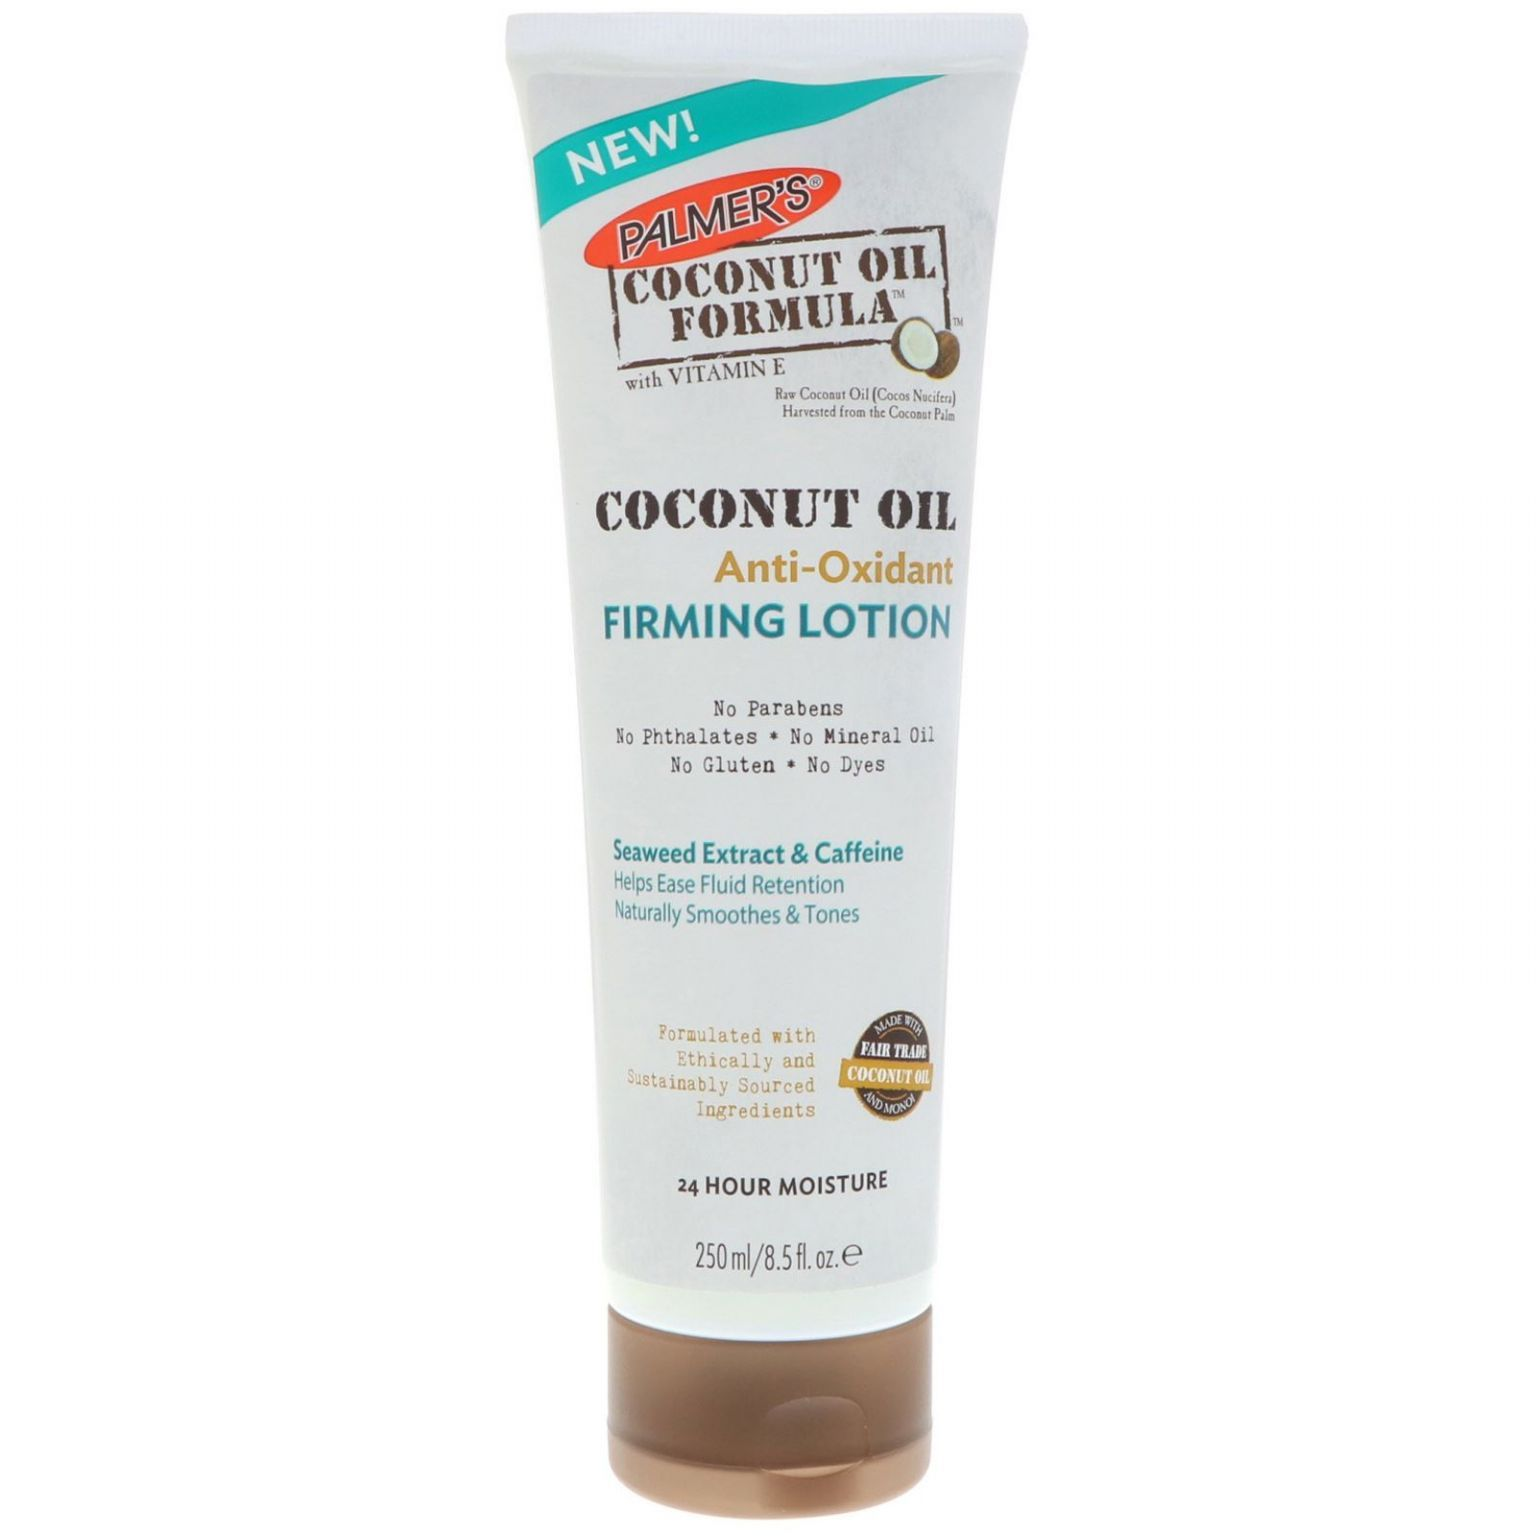 Coconut Oil Anti-Oxidant FIRMING LOTION